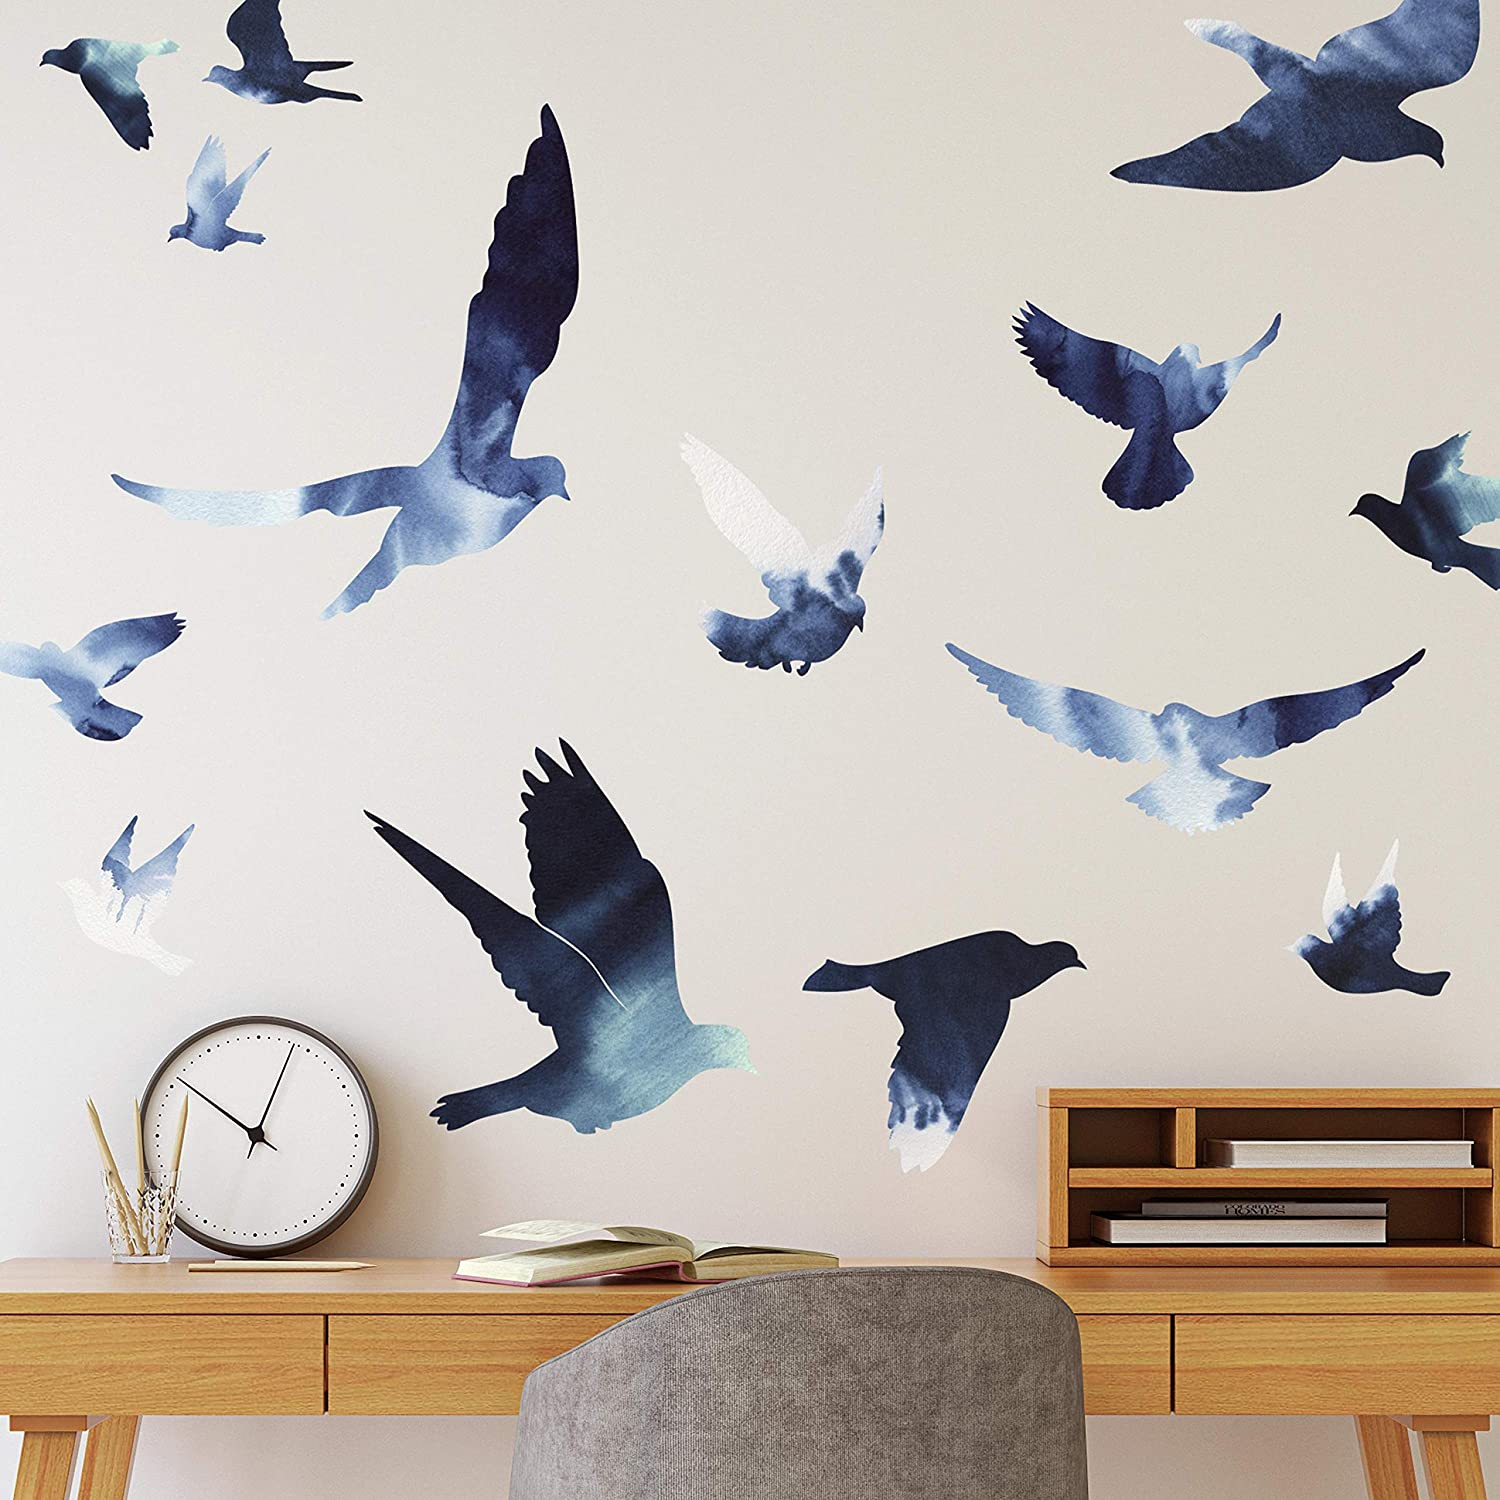 RoomMates Birds In Flight Peel And Stick Giant Wall Decals | Blue Wall Stickers